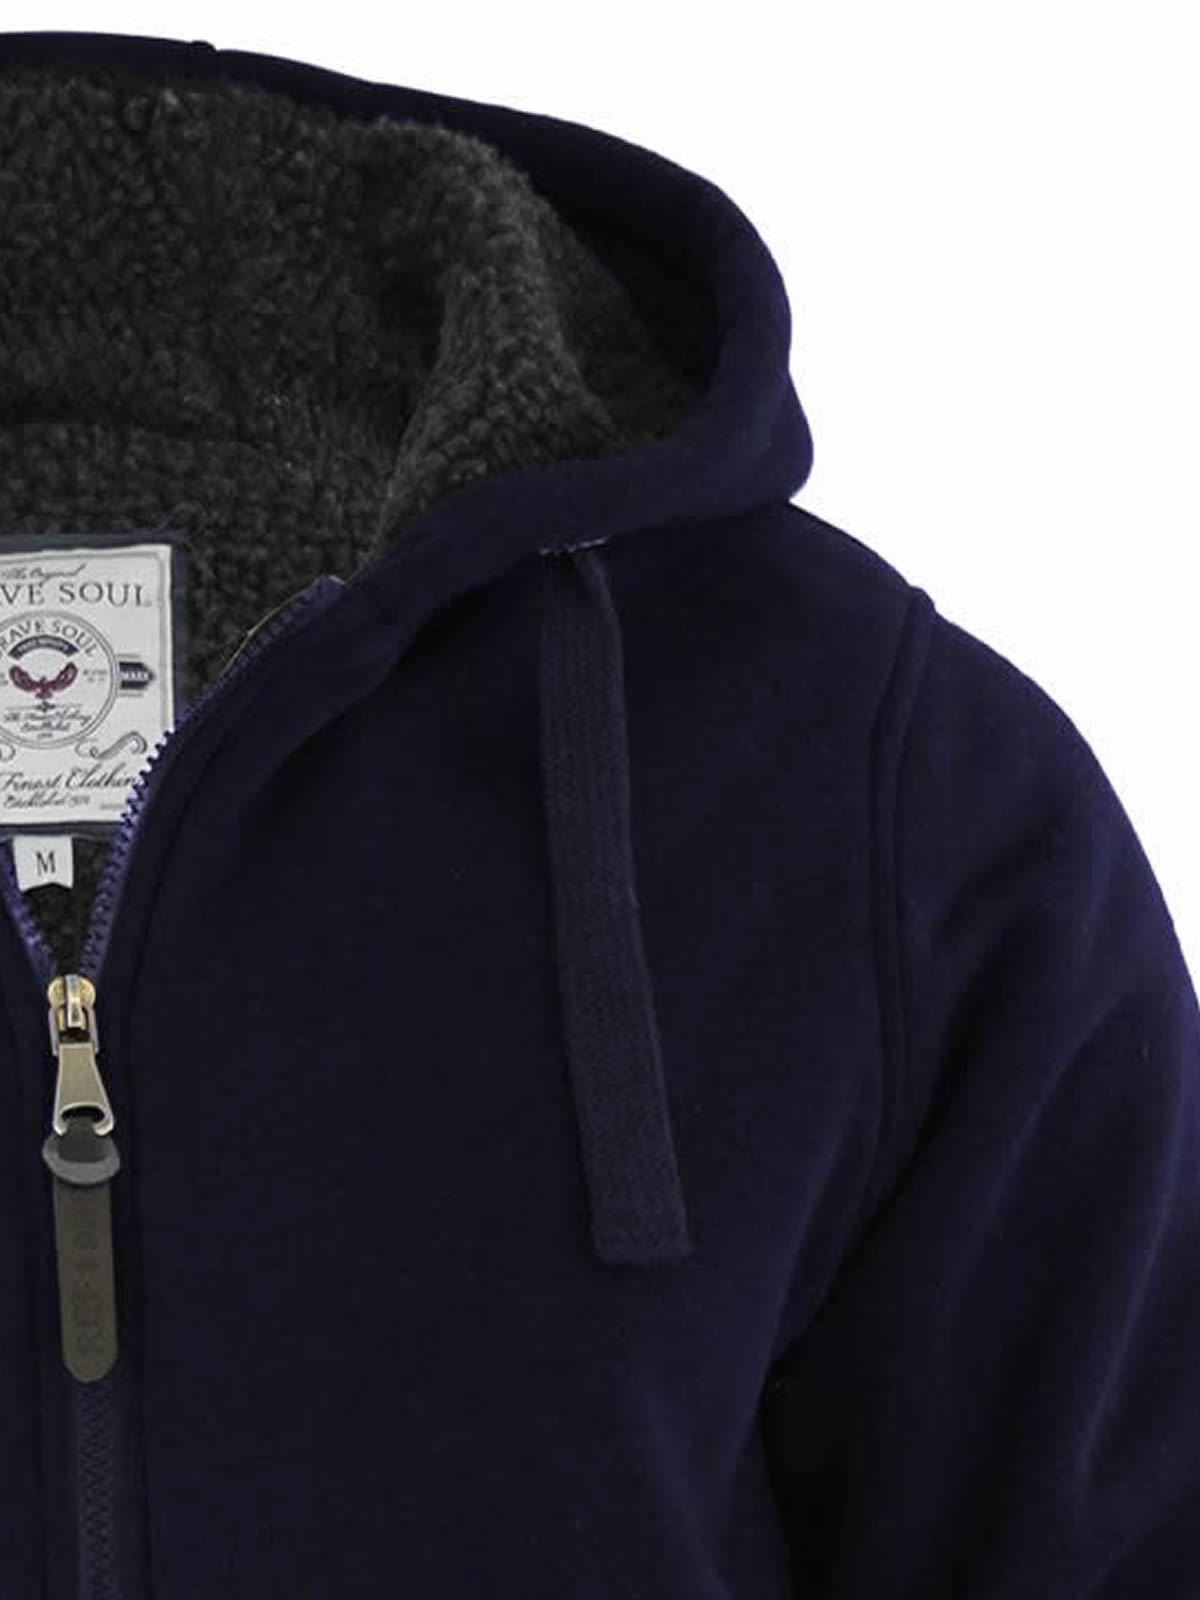 Brave-Soul-Zone-Mens-Hoodie-Sherpa-Fleece-Lined-Zip-Up-Hooded-Sweater thumbnail 4